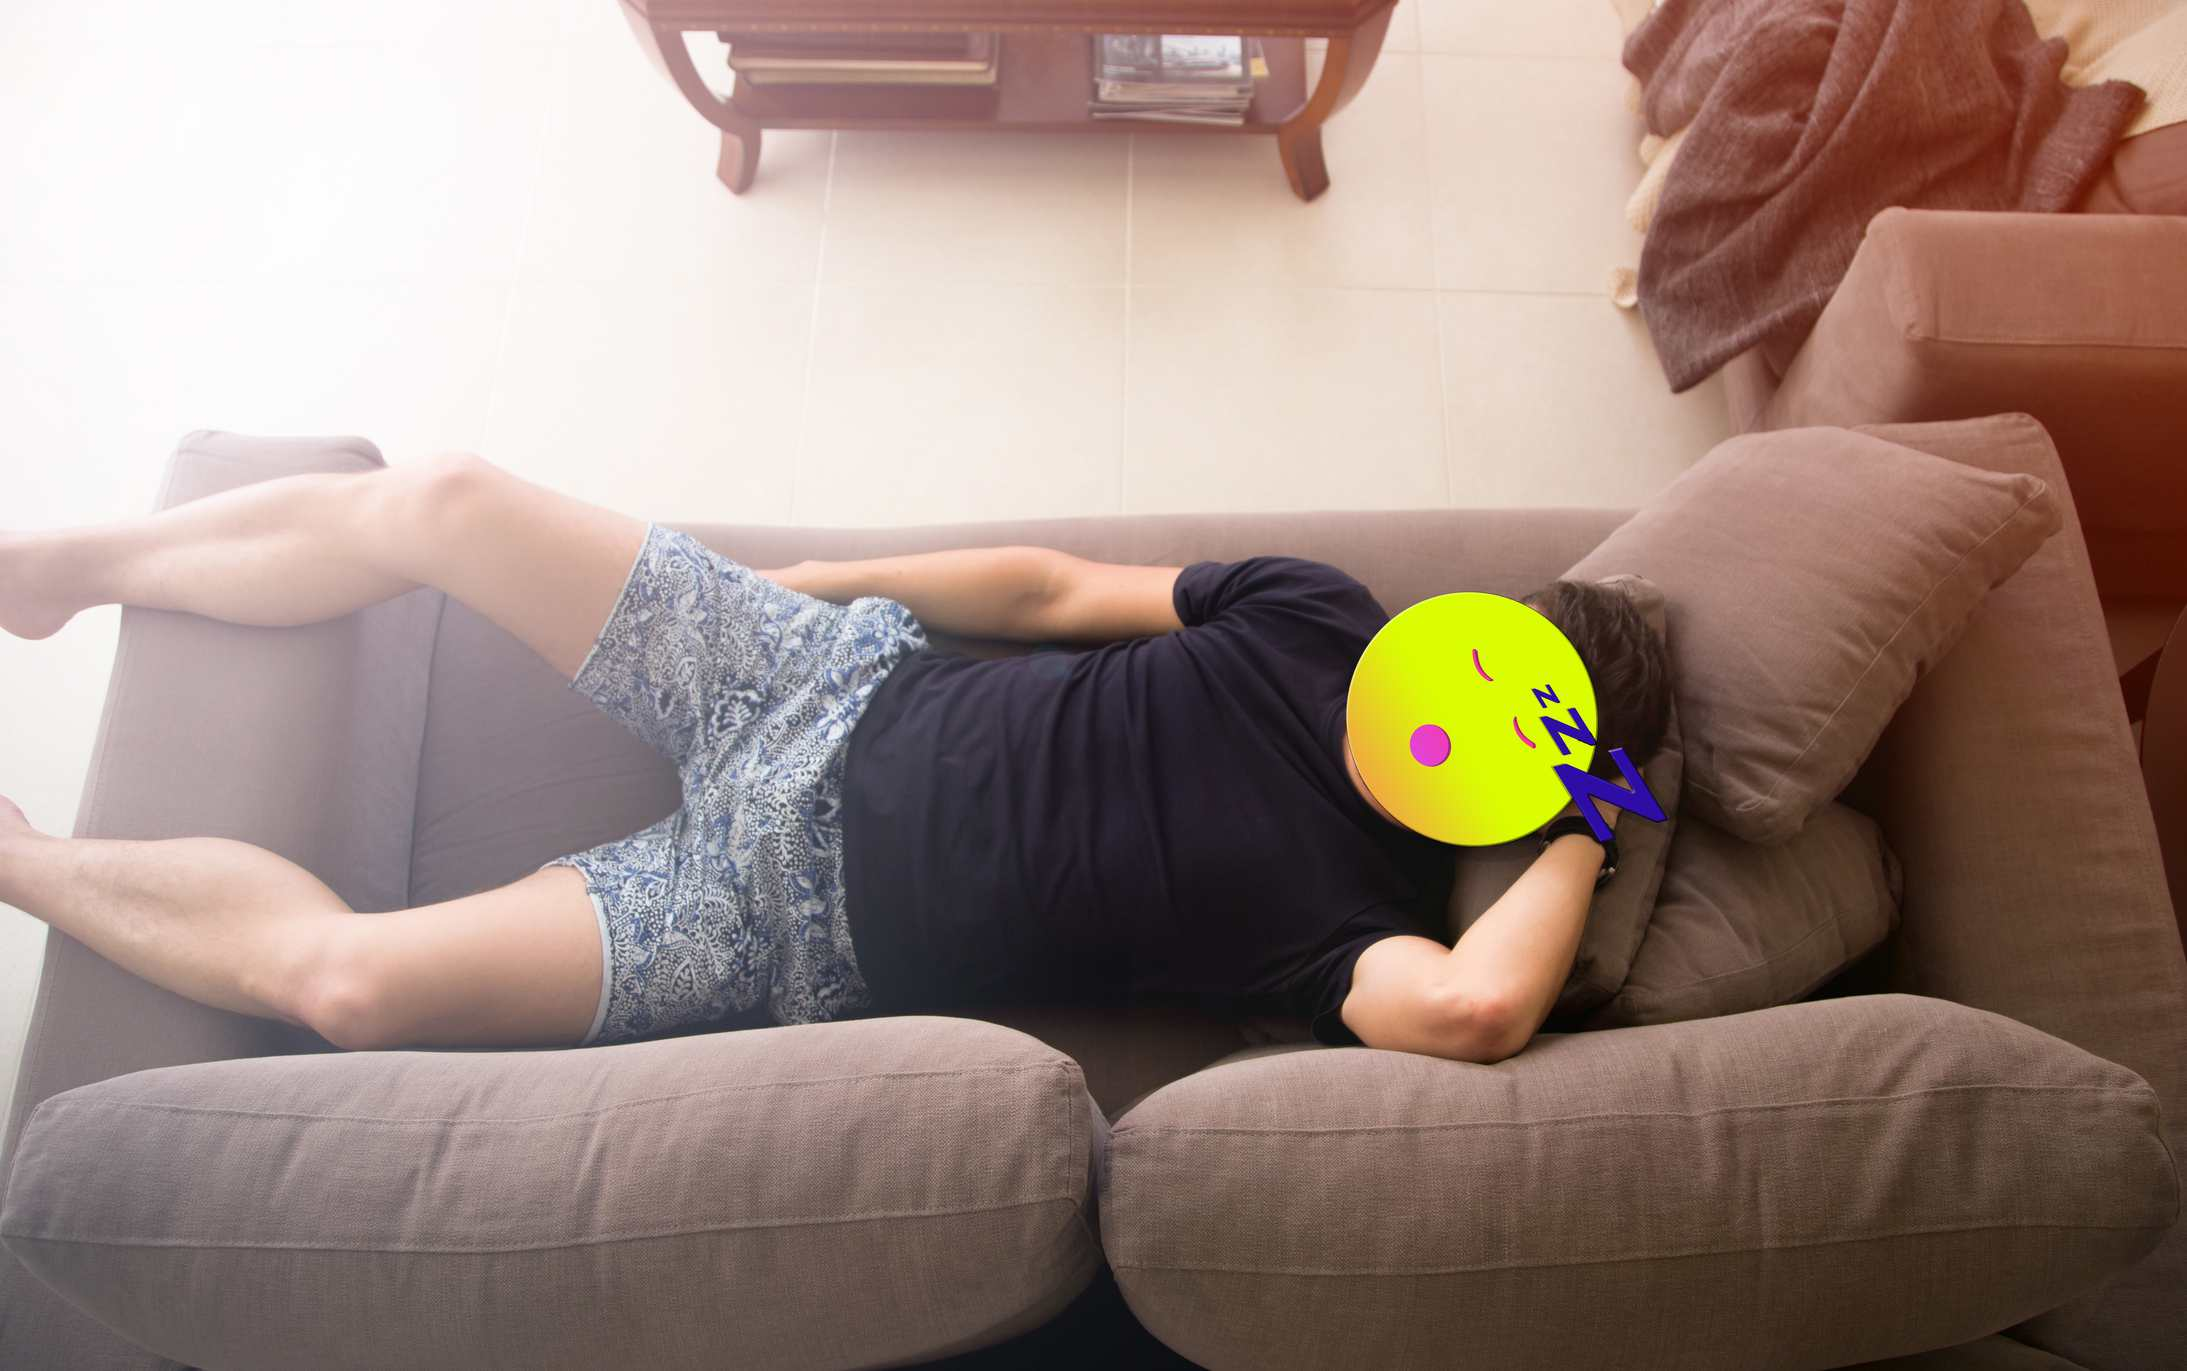 A man lying on a couch with an emoji in front of his head